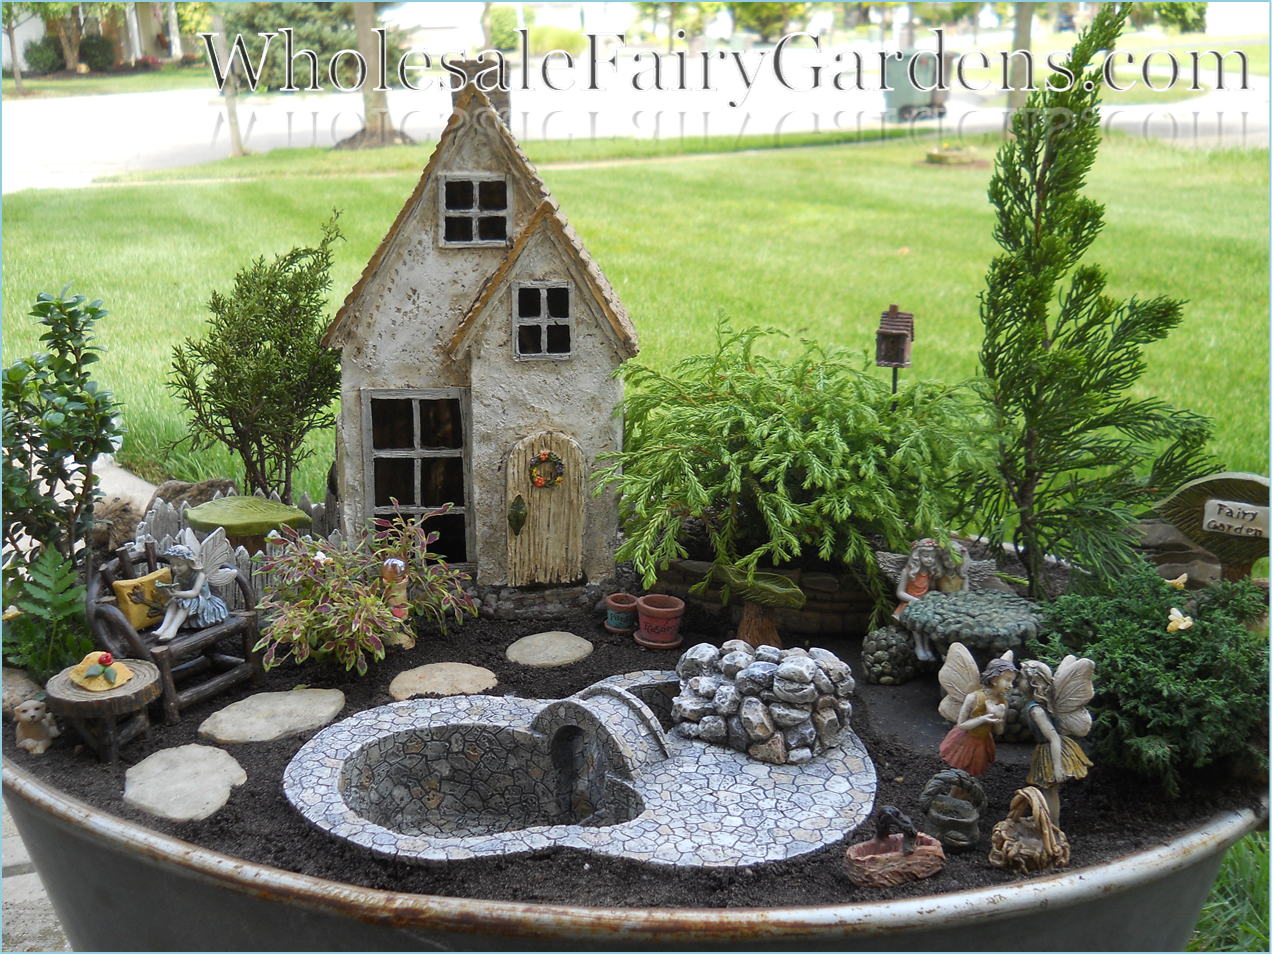 Now that is one AWESOME display! Fairy garden houses